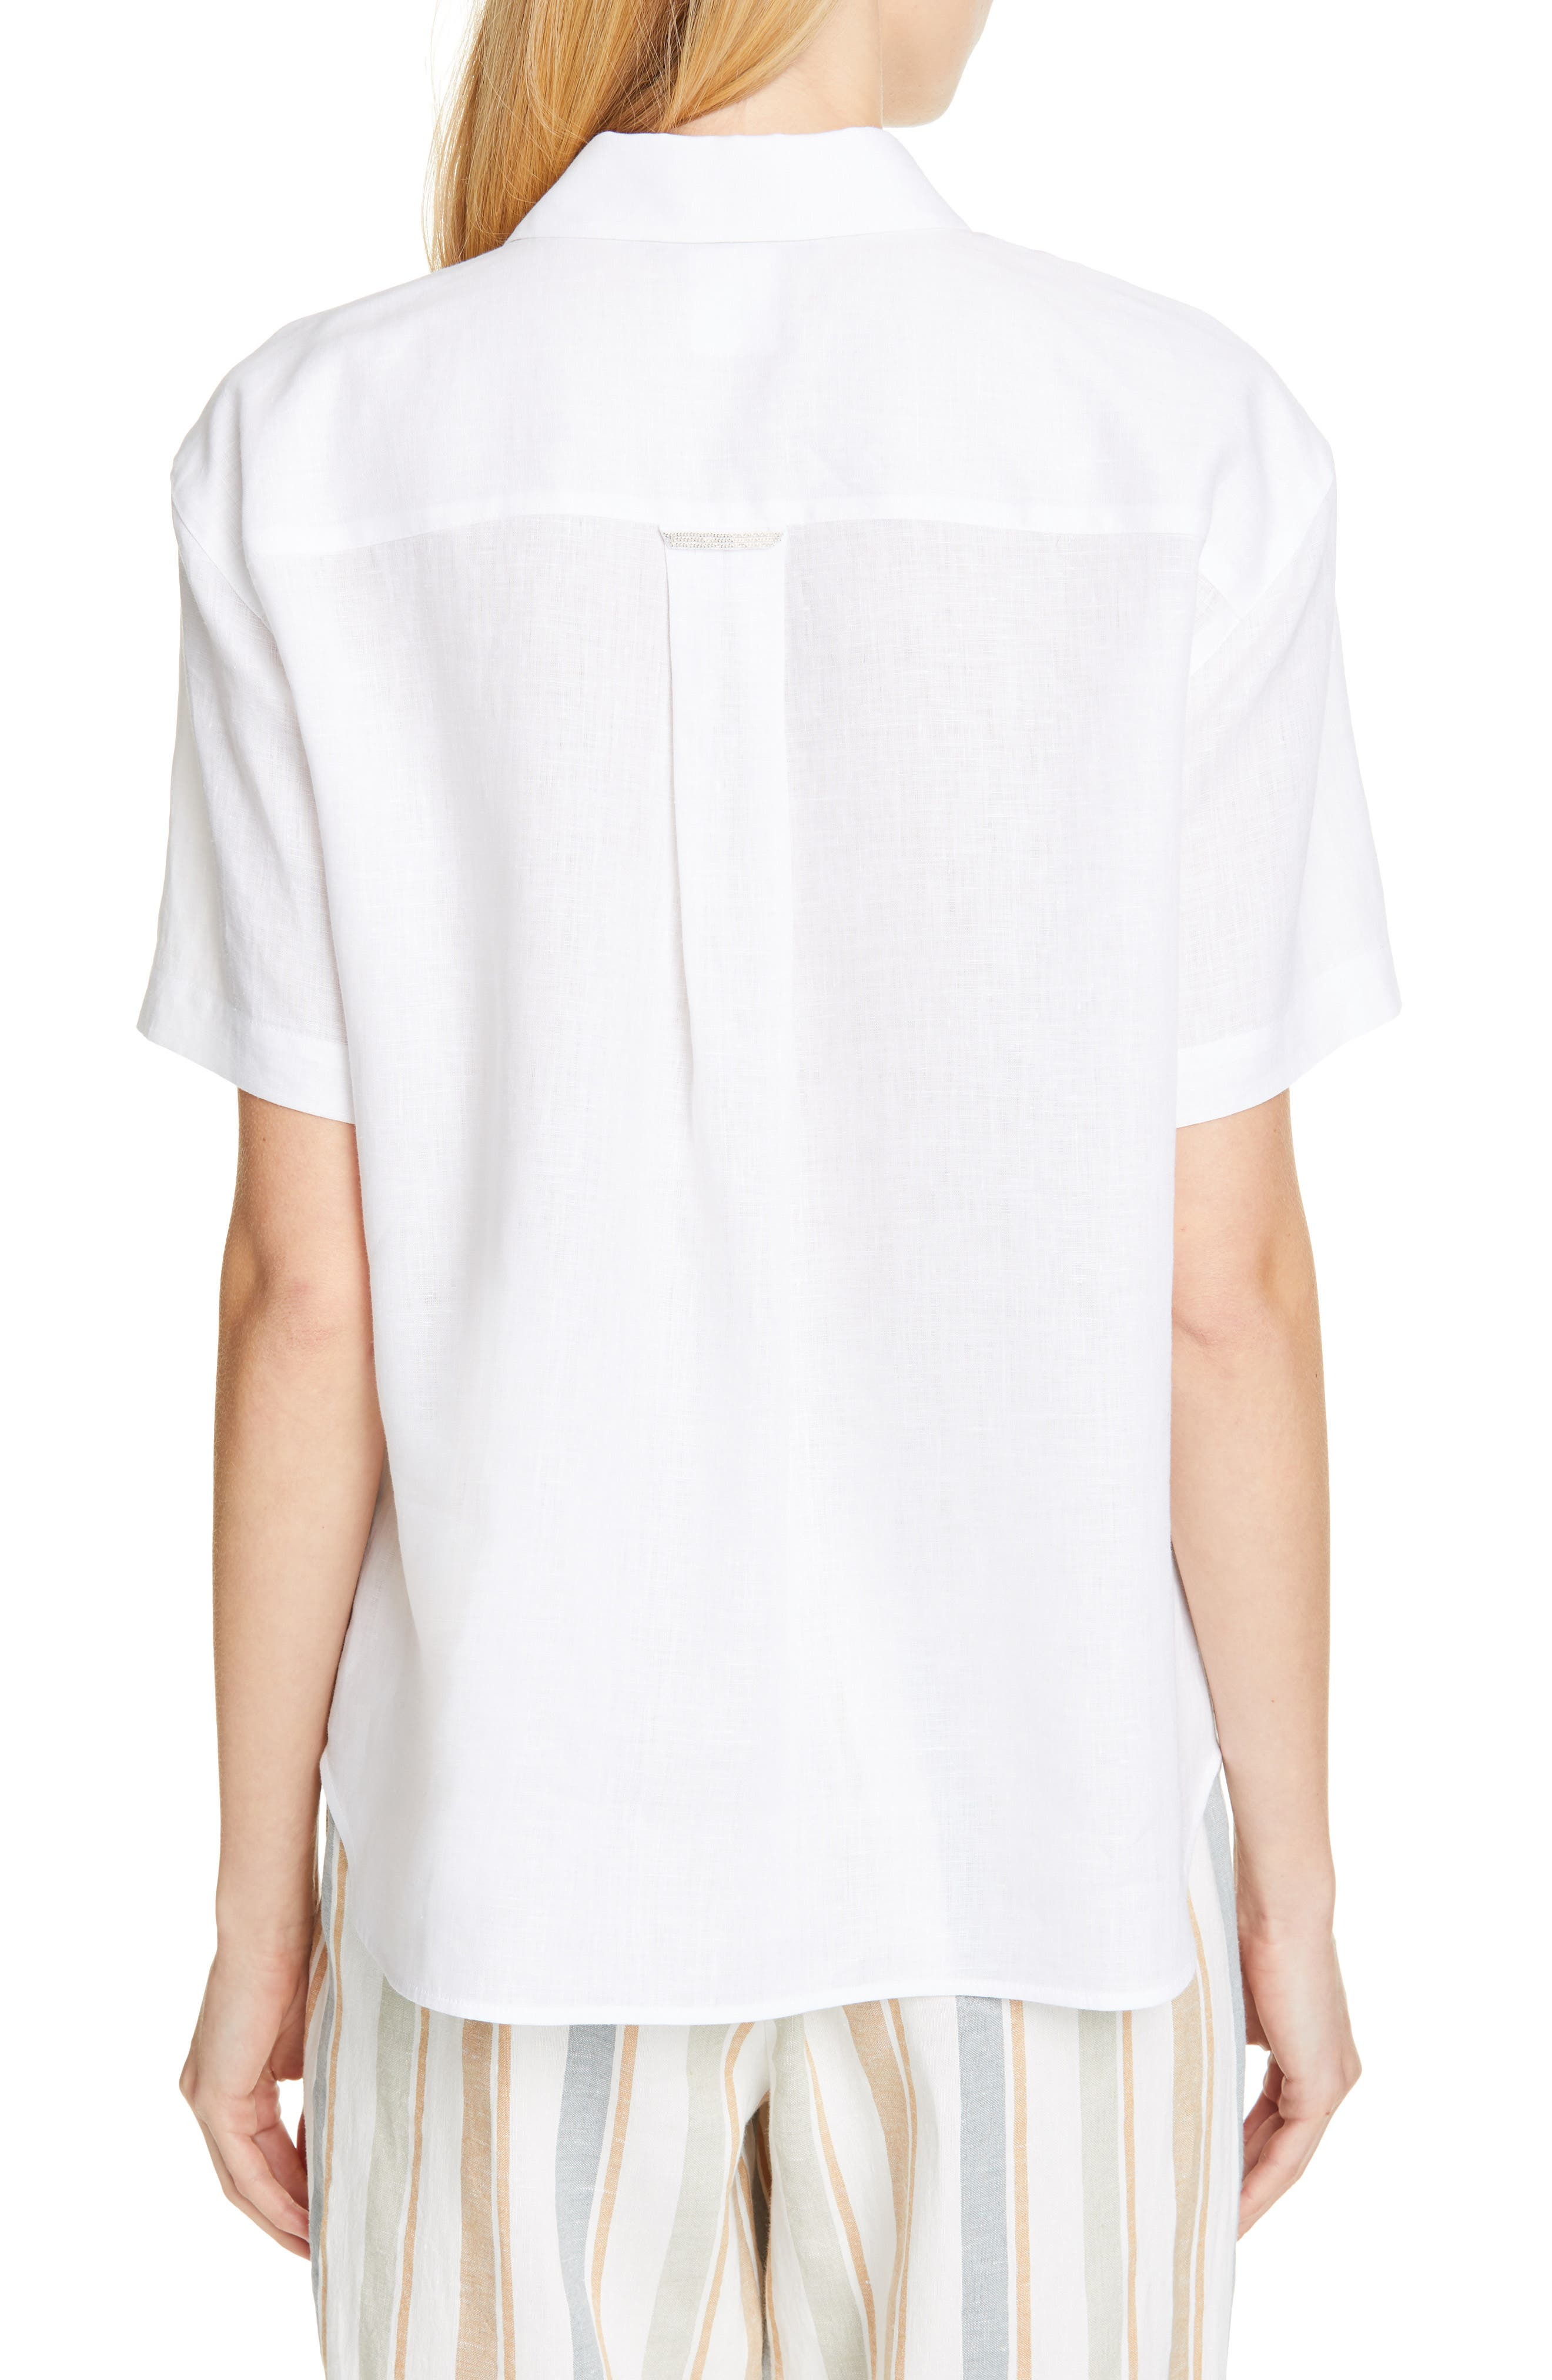 LAFAYETTE 148 NEW YORK, Justice Linen Shirt, Alternate thumbnail 2, color, WHITE